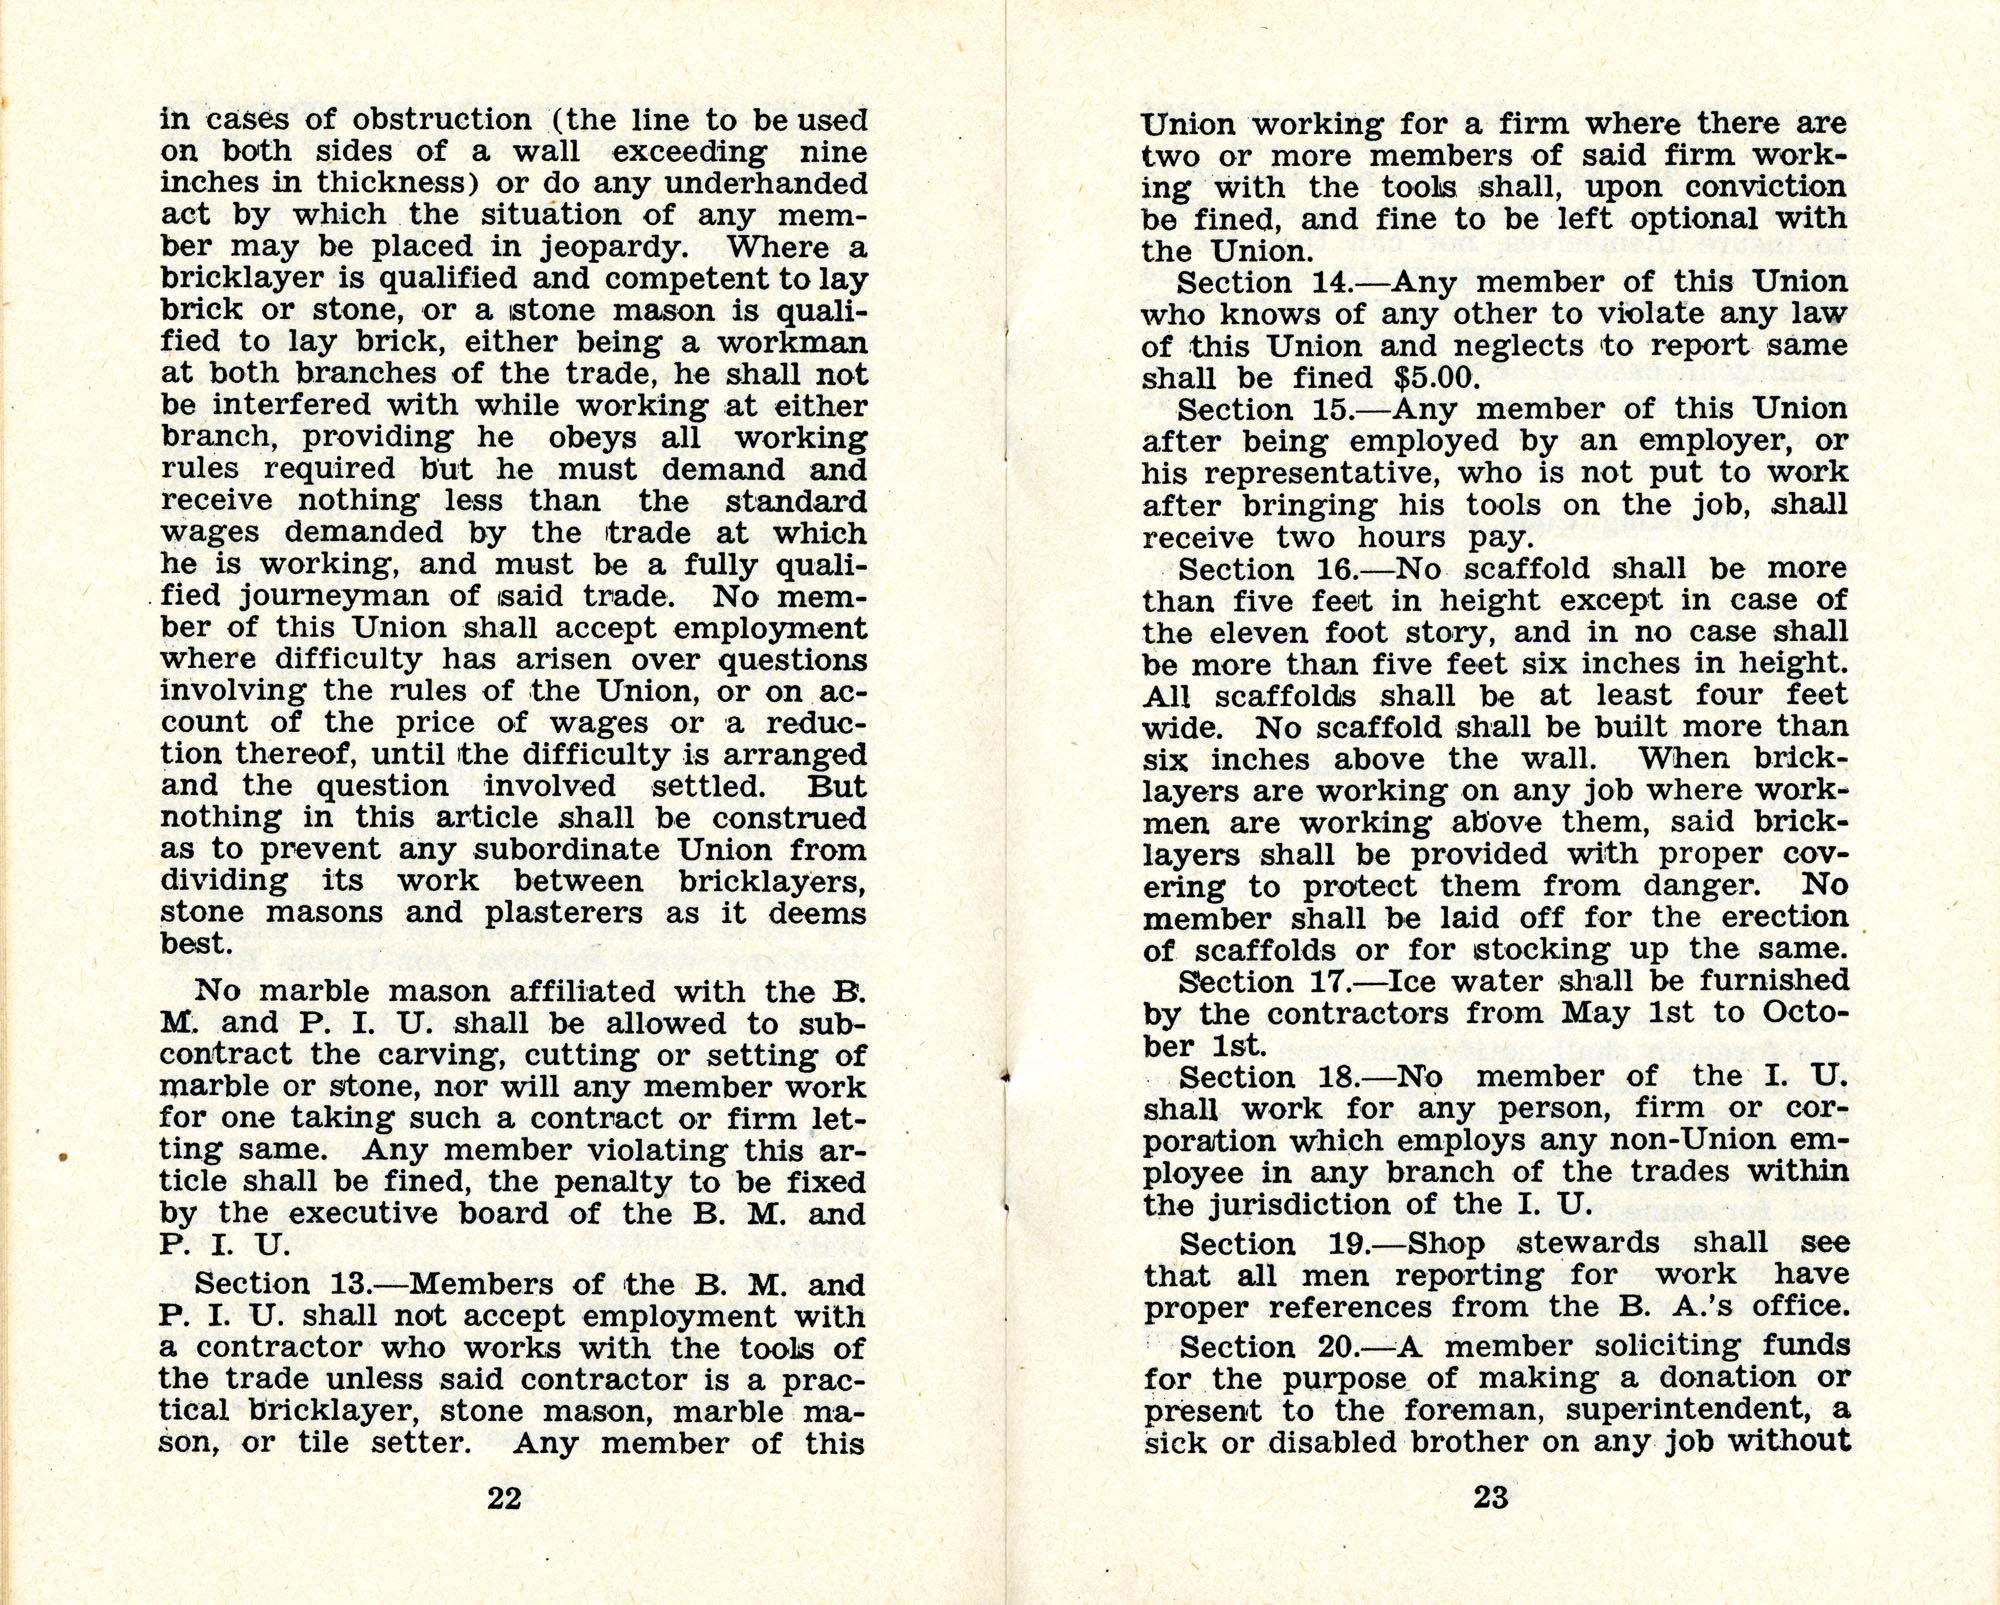 Constitution and by-laws of unions no.1 and 10, Page 12